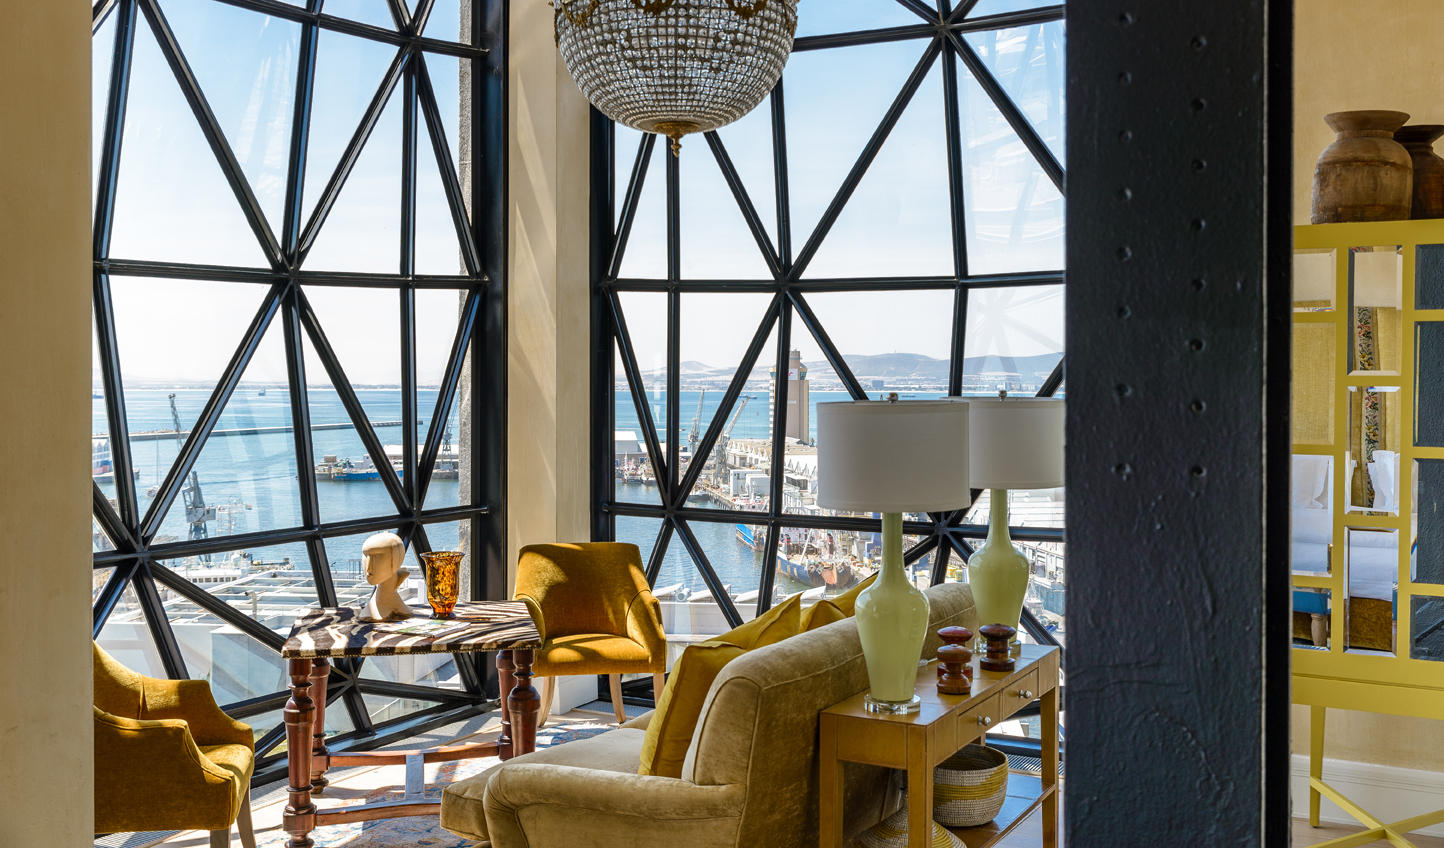 Come evening, bed down at the luxurious Silo Hotel and enjoy views across the Cape